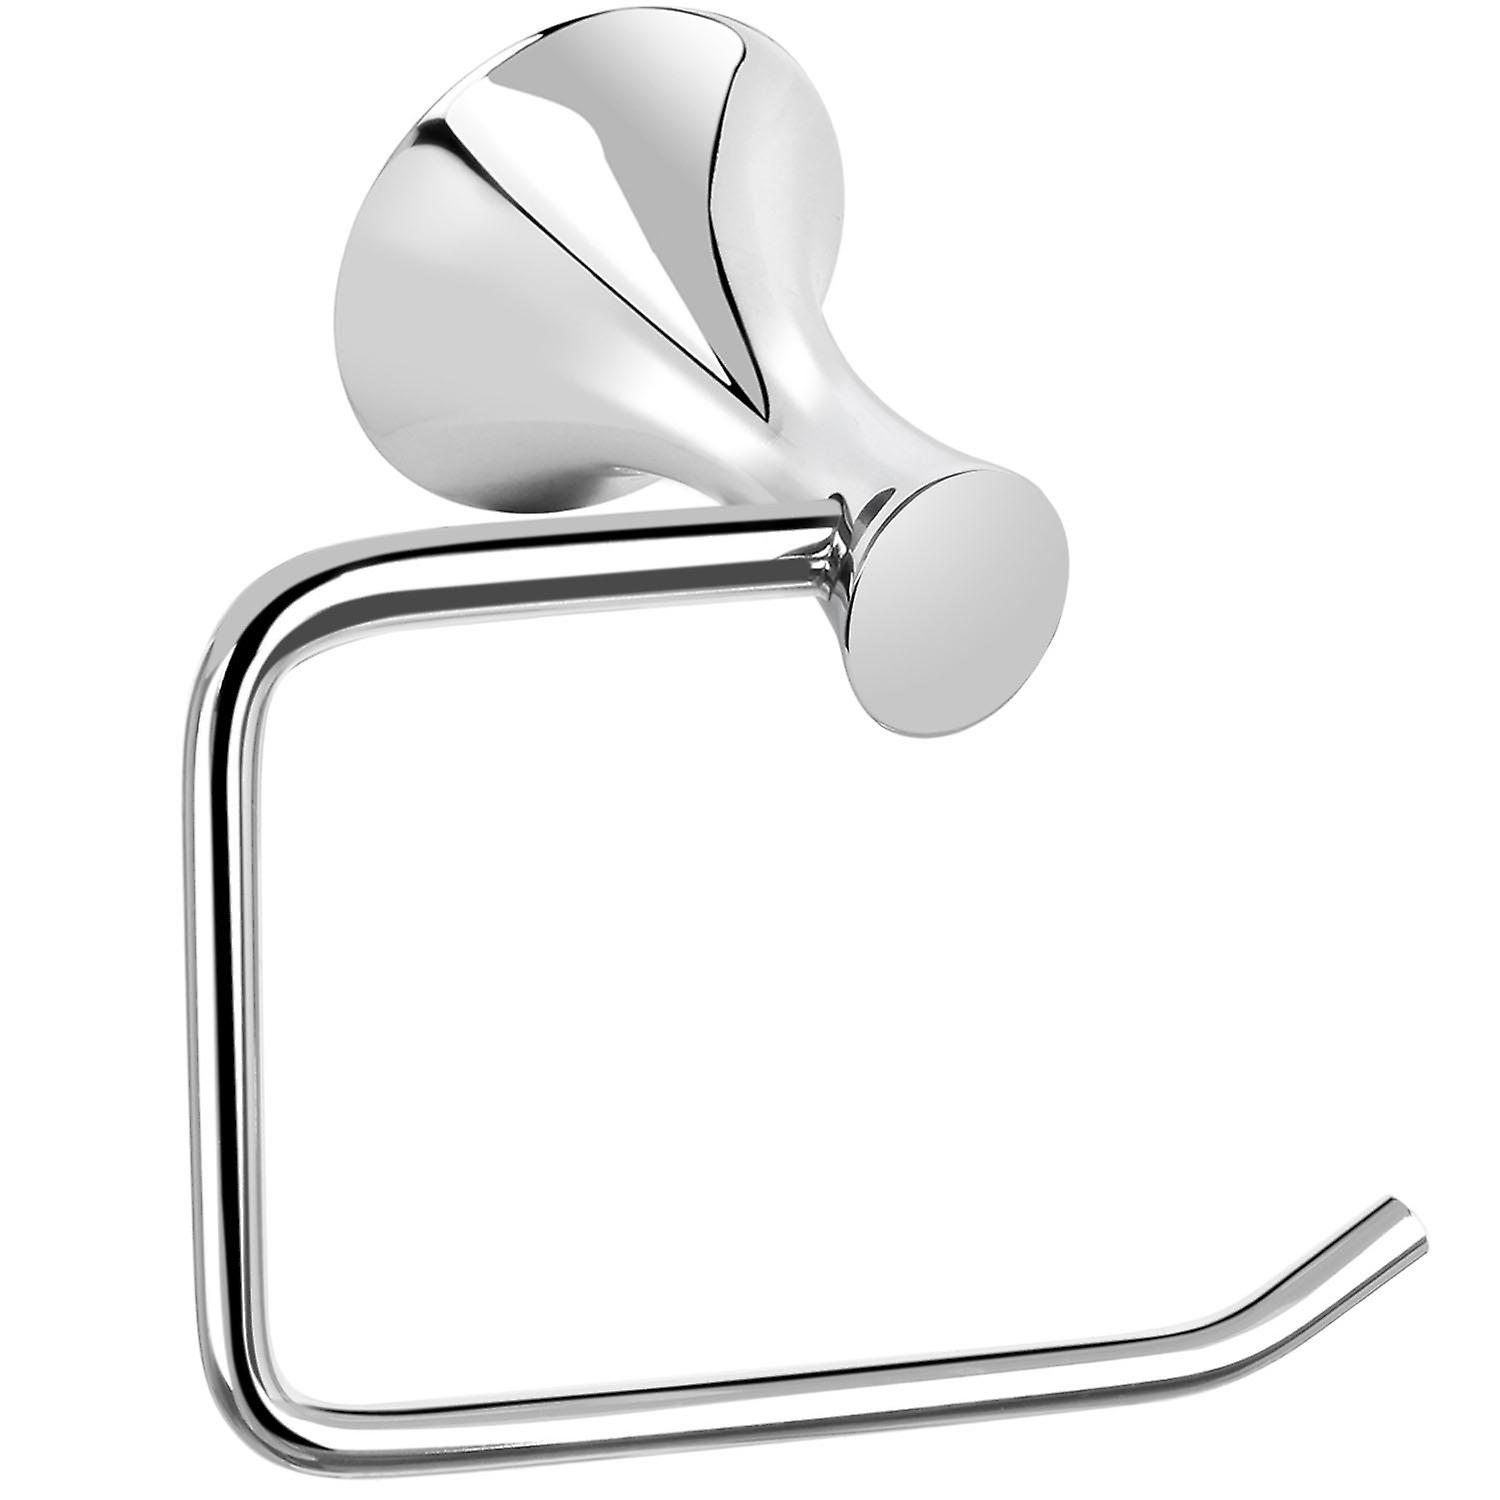 TRIXES Toilet Roll Holder Deluxe Bathroom Accessory Stylish Modern Design